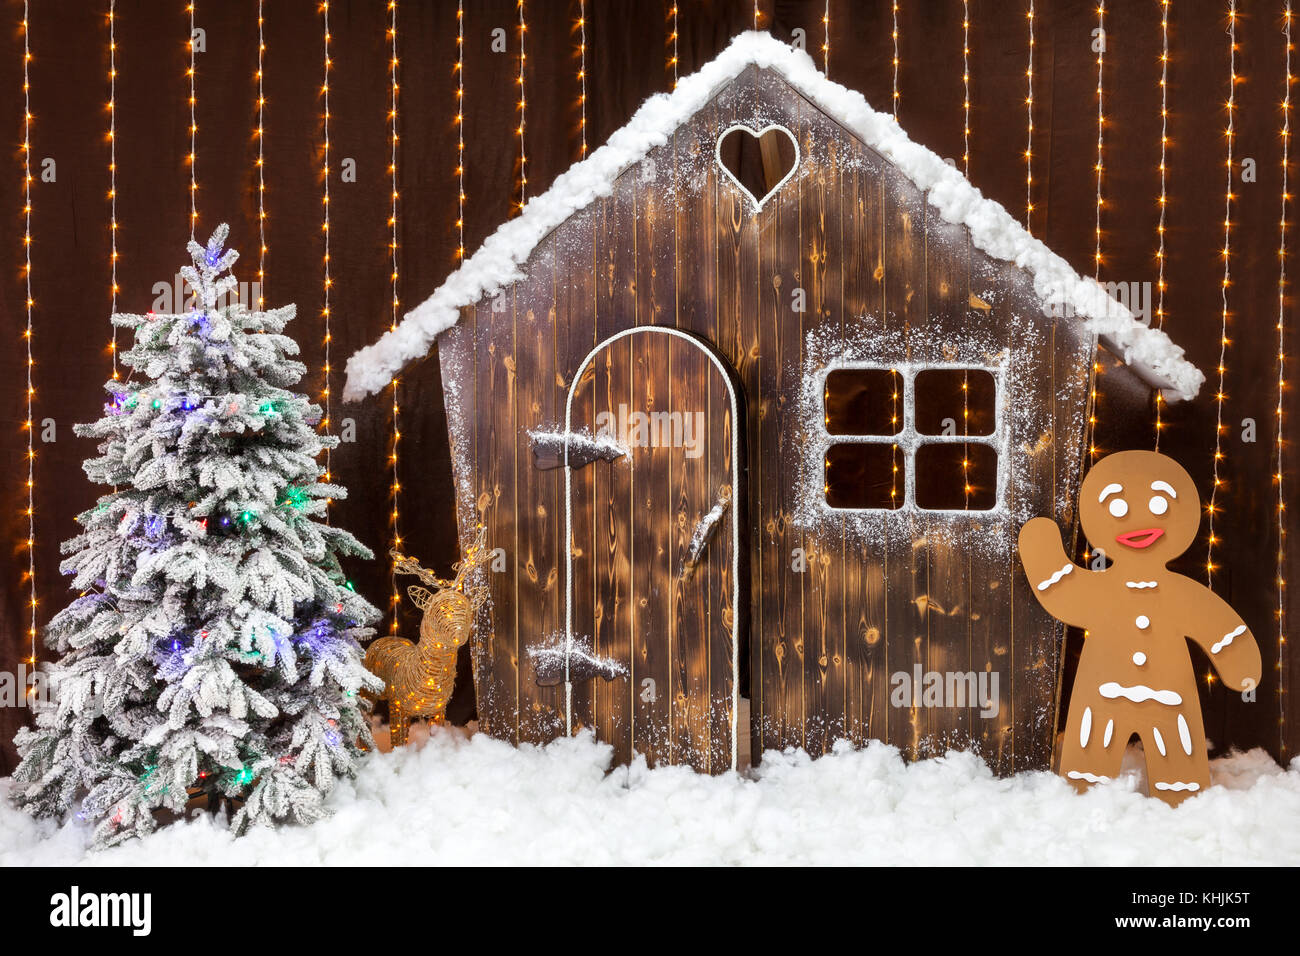 a new year scene with a snow covered wooden hut a gingerbread man and